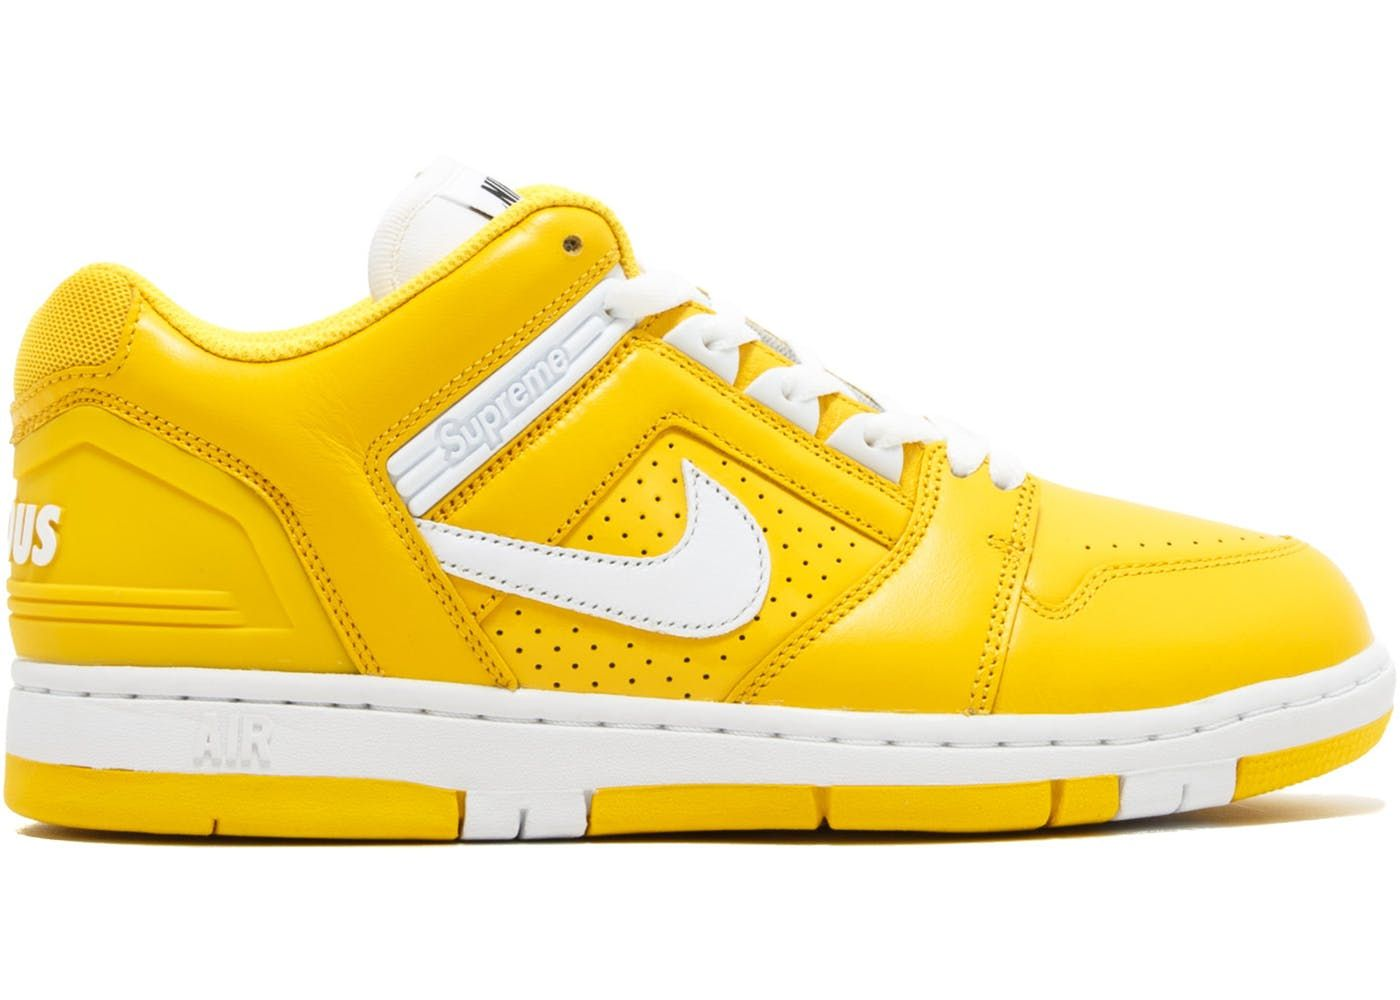 23 Nike Air Force 2 ideas | nike air force 2, nike, nike air force